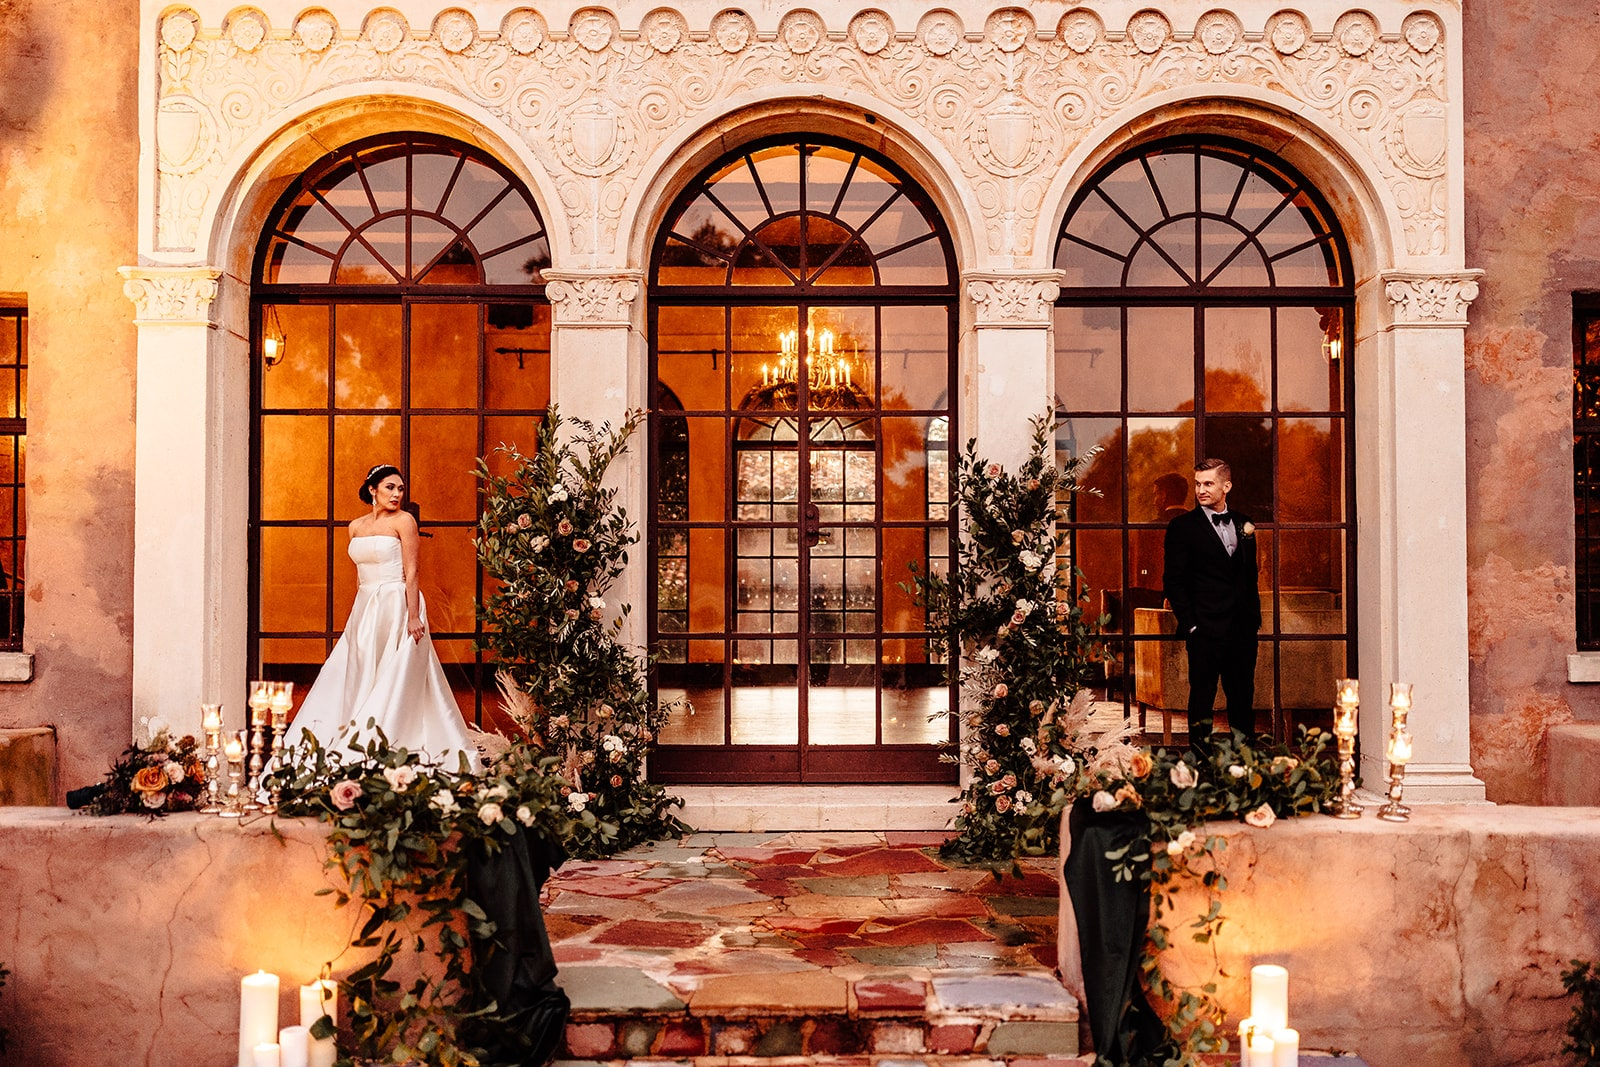 decorated columns in between large windows of greenery as bride and groom stand on opposite sides of the decor looking at each other